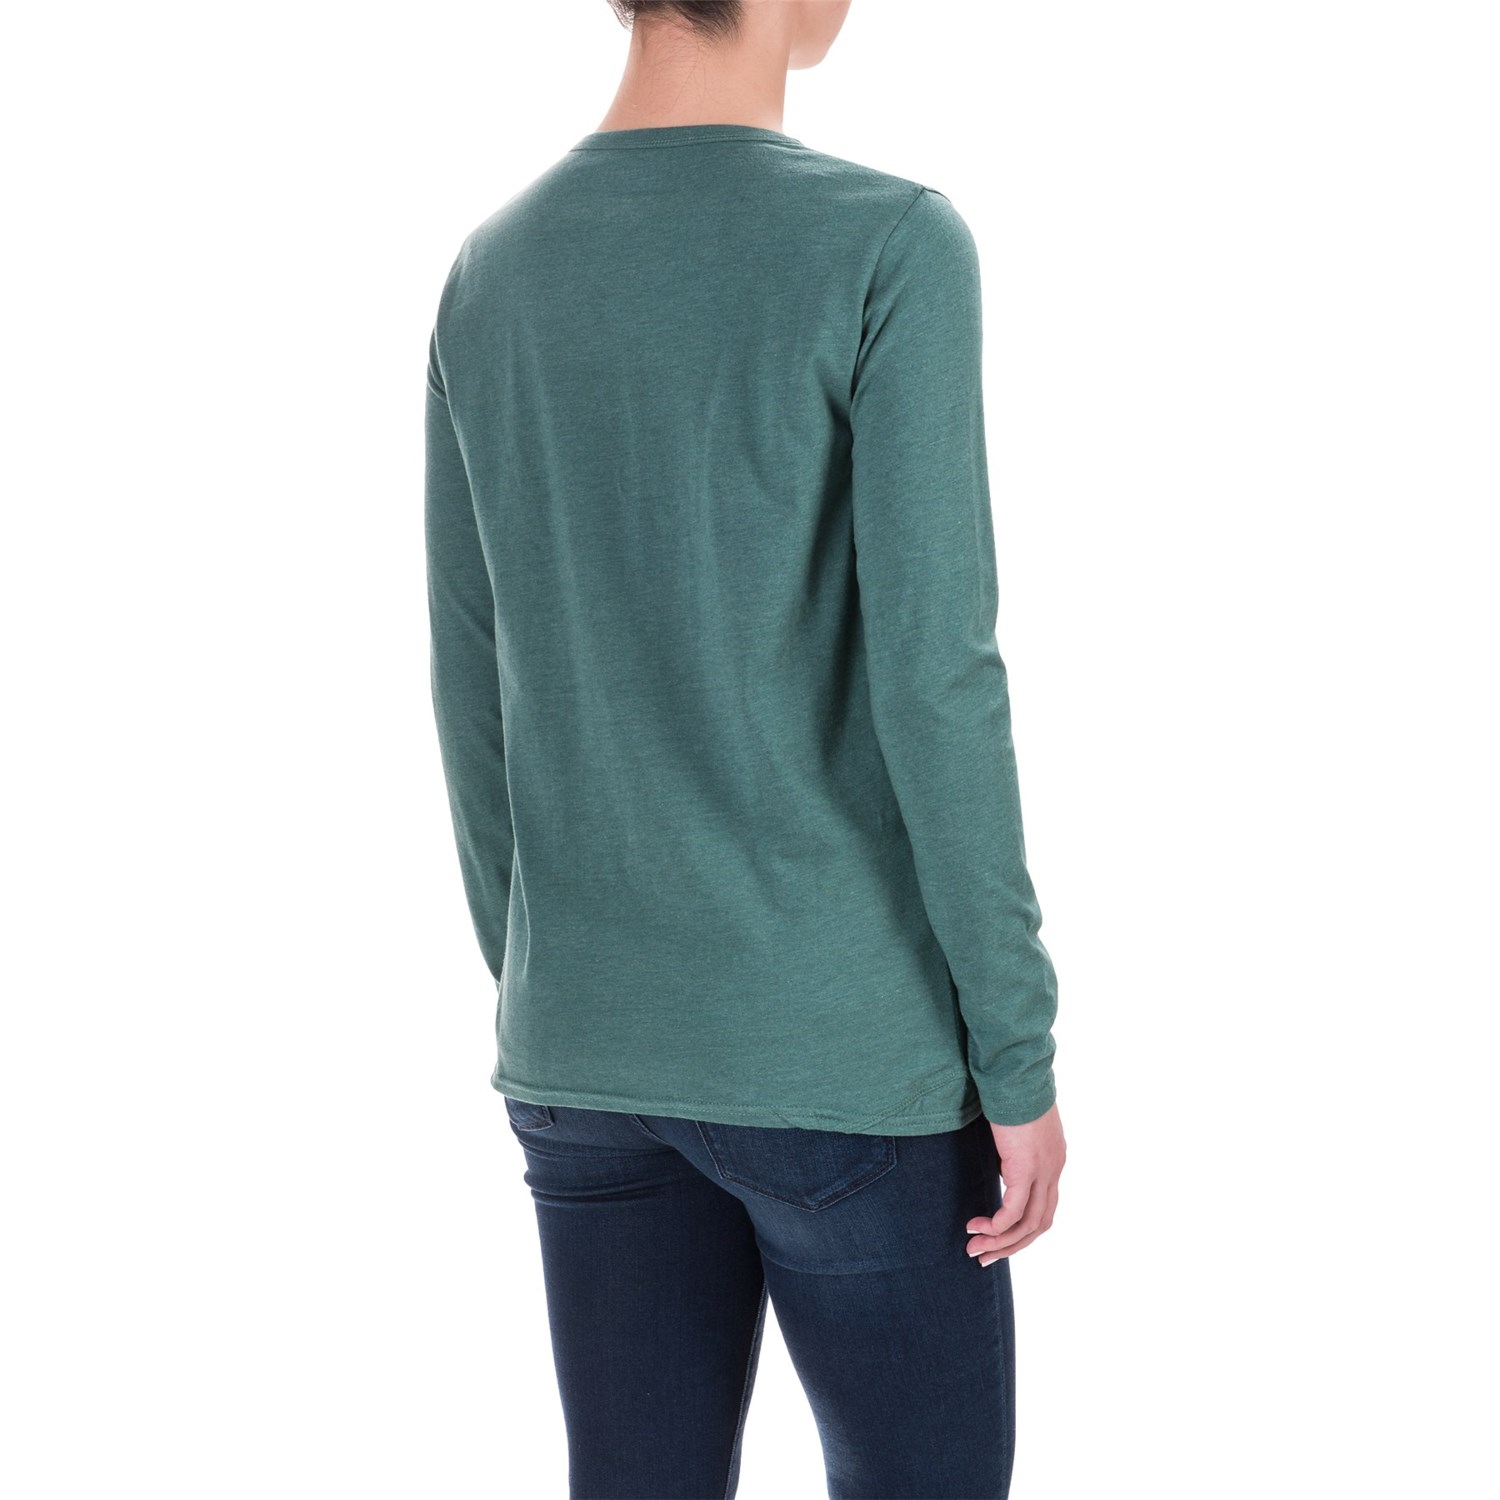 Basic wardrobe staples like men's long sleeve shirts provide protection from the elements and are part of your daily look. Take a classic design from adidas clothing and create new intentions with it to help with sport performance or stand-out athletic style.